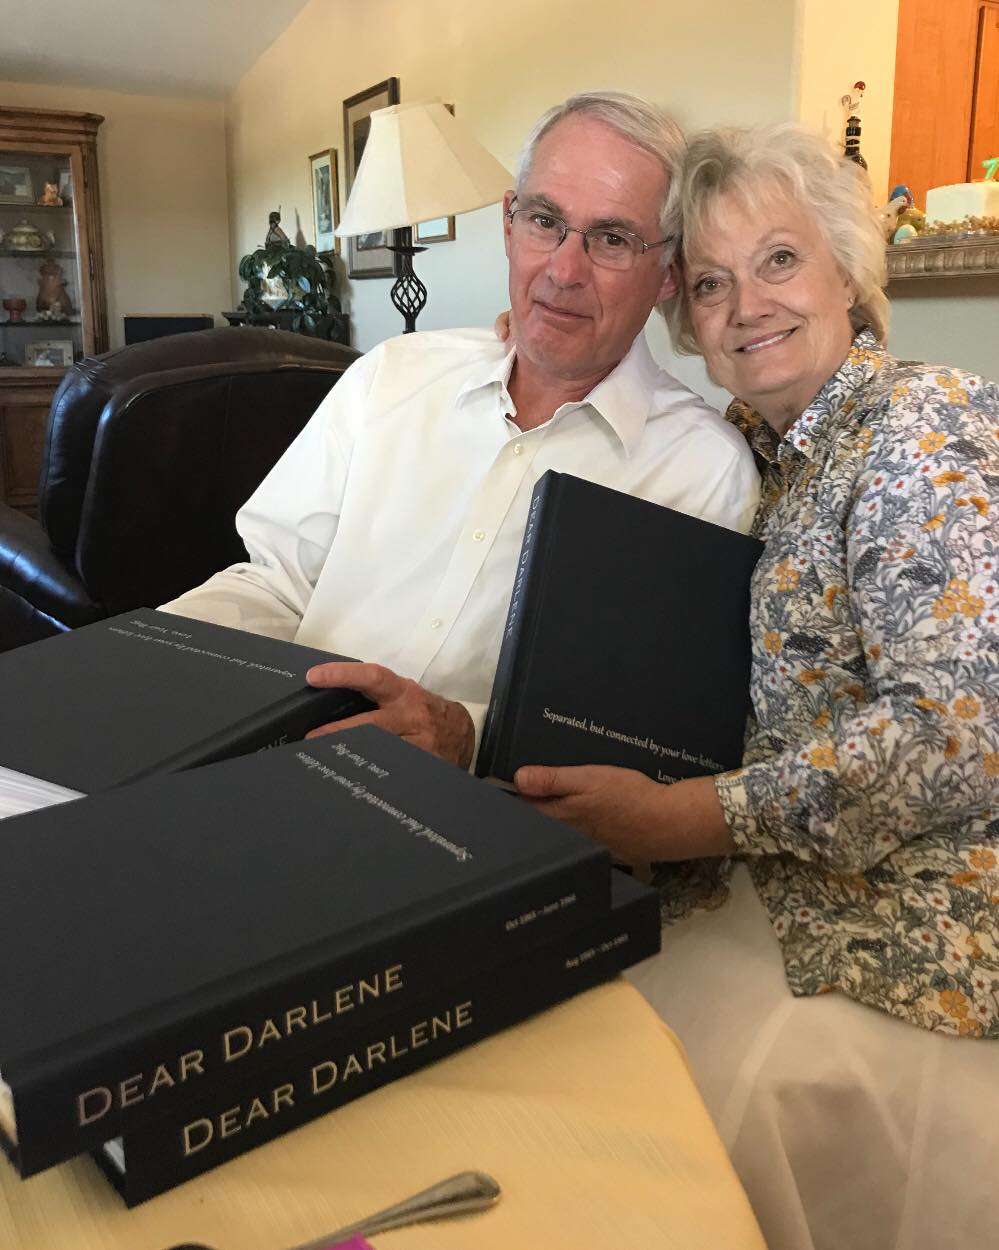 A Little Story About Ken and Darlene